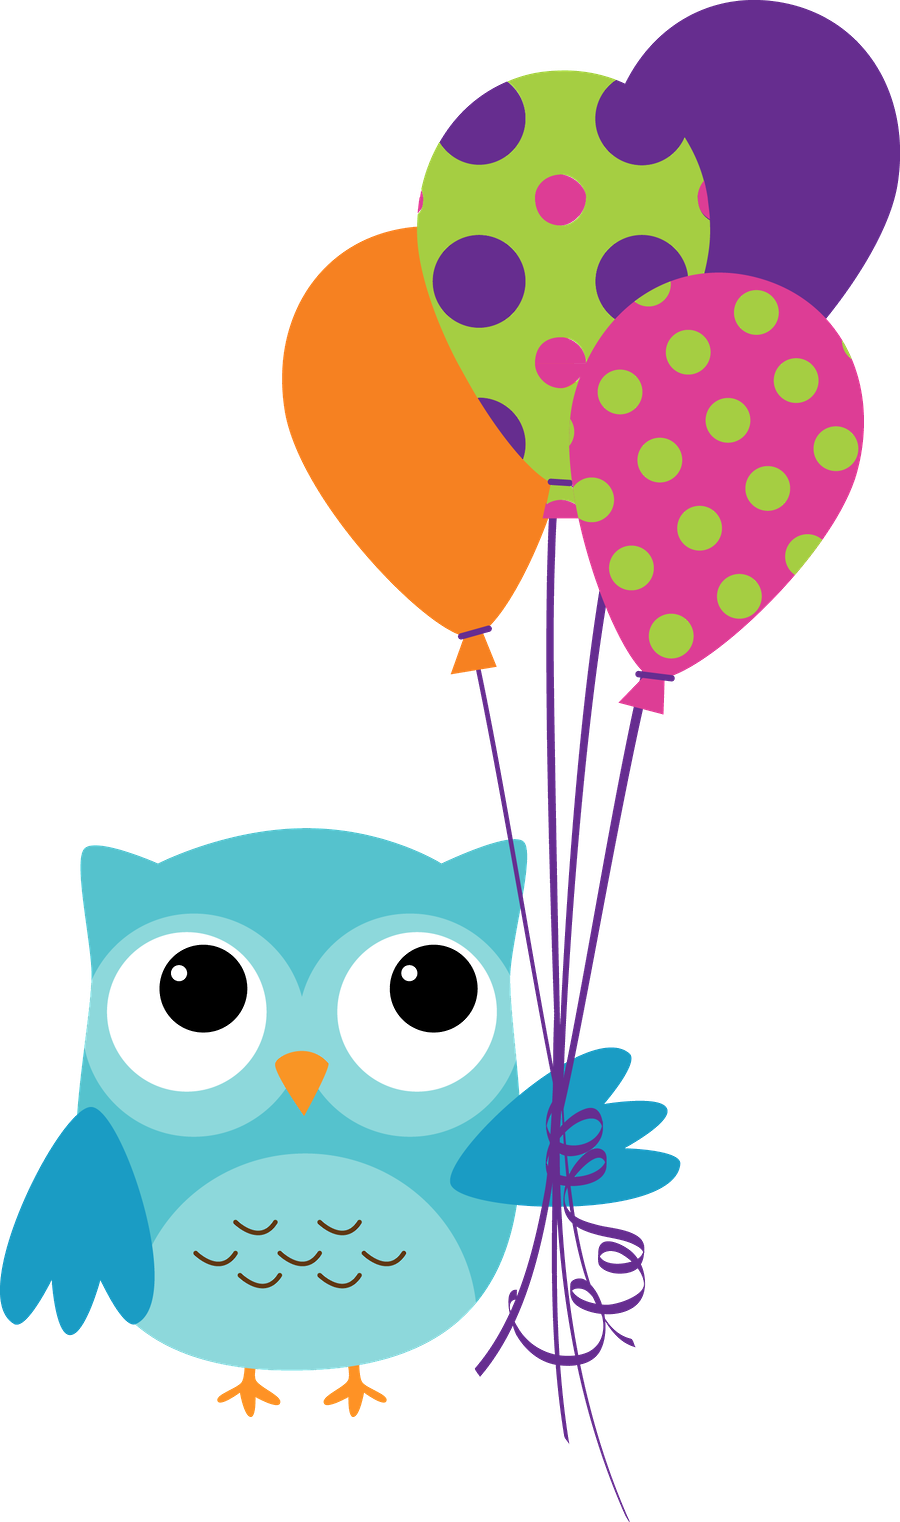 Clipart cupcake owl. Corujas minus already sectioned